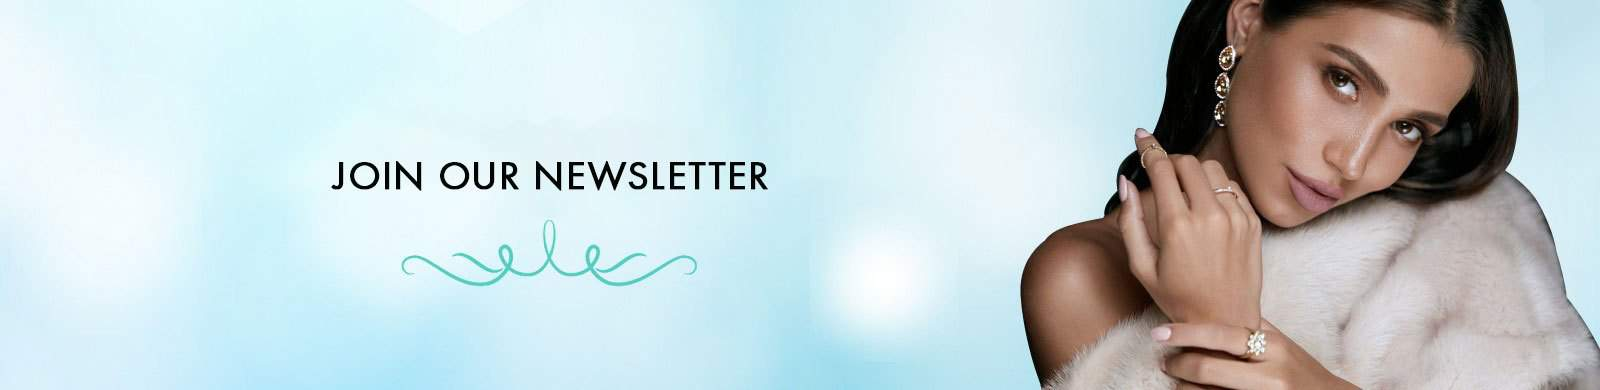 Buckhead Plastic Surgery Newsletter | Atlanta, GA